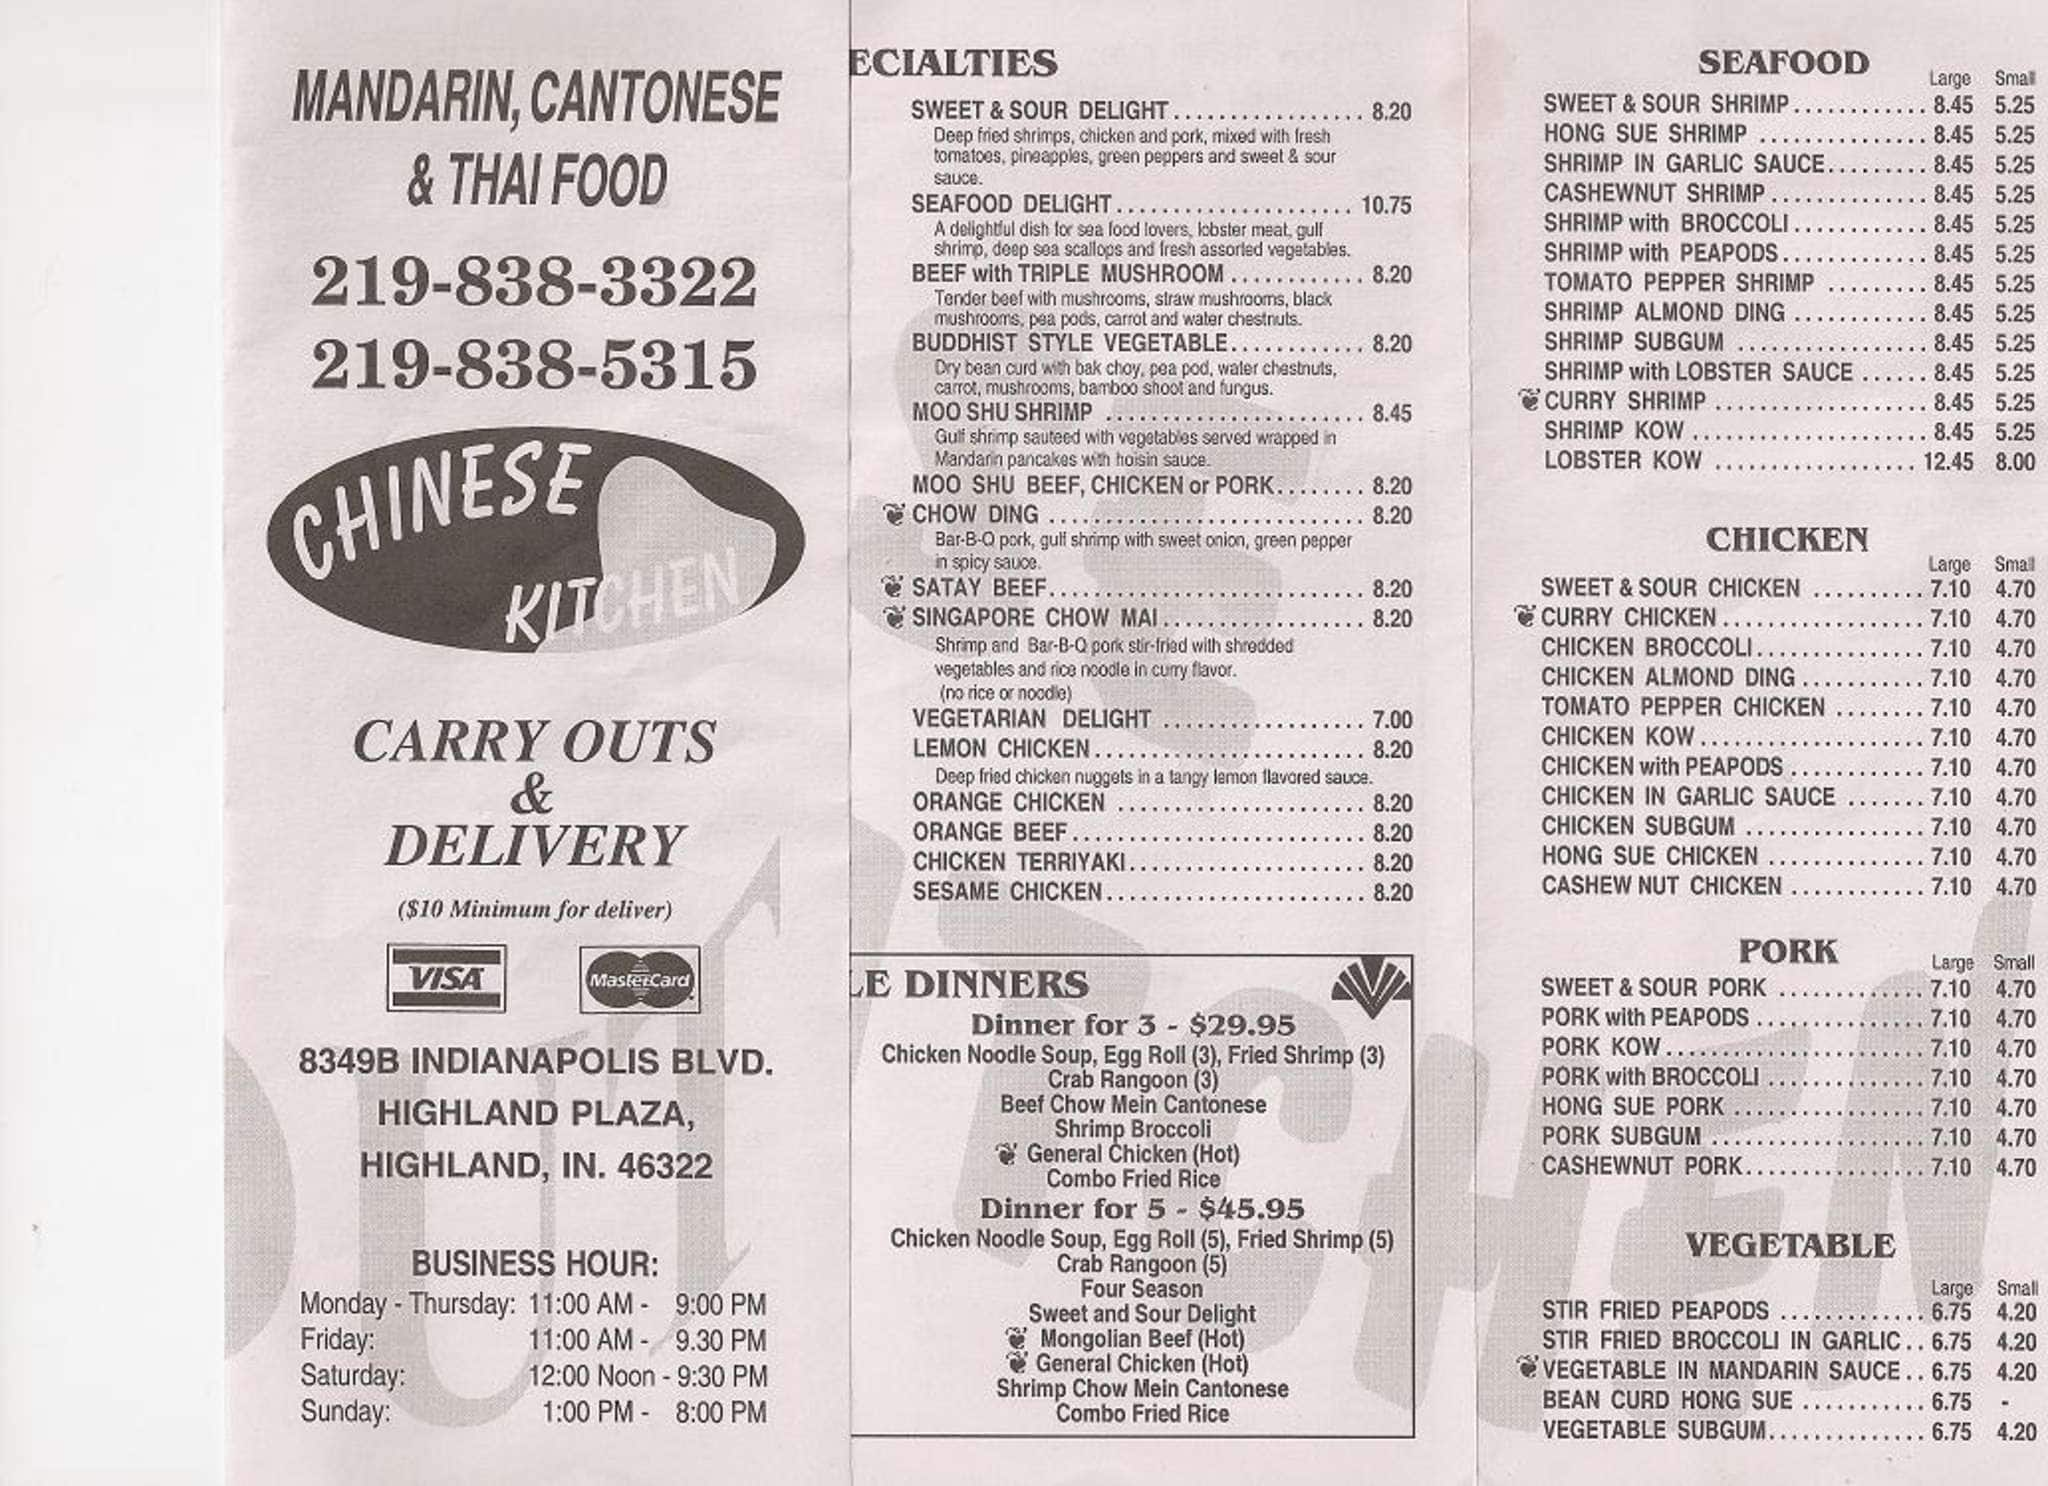 Menu at Chinese Kitchen restaurant, Highland